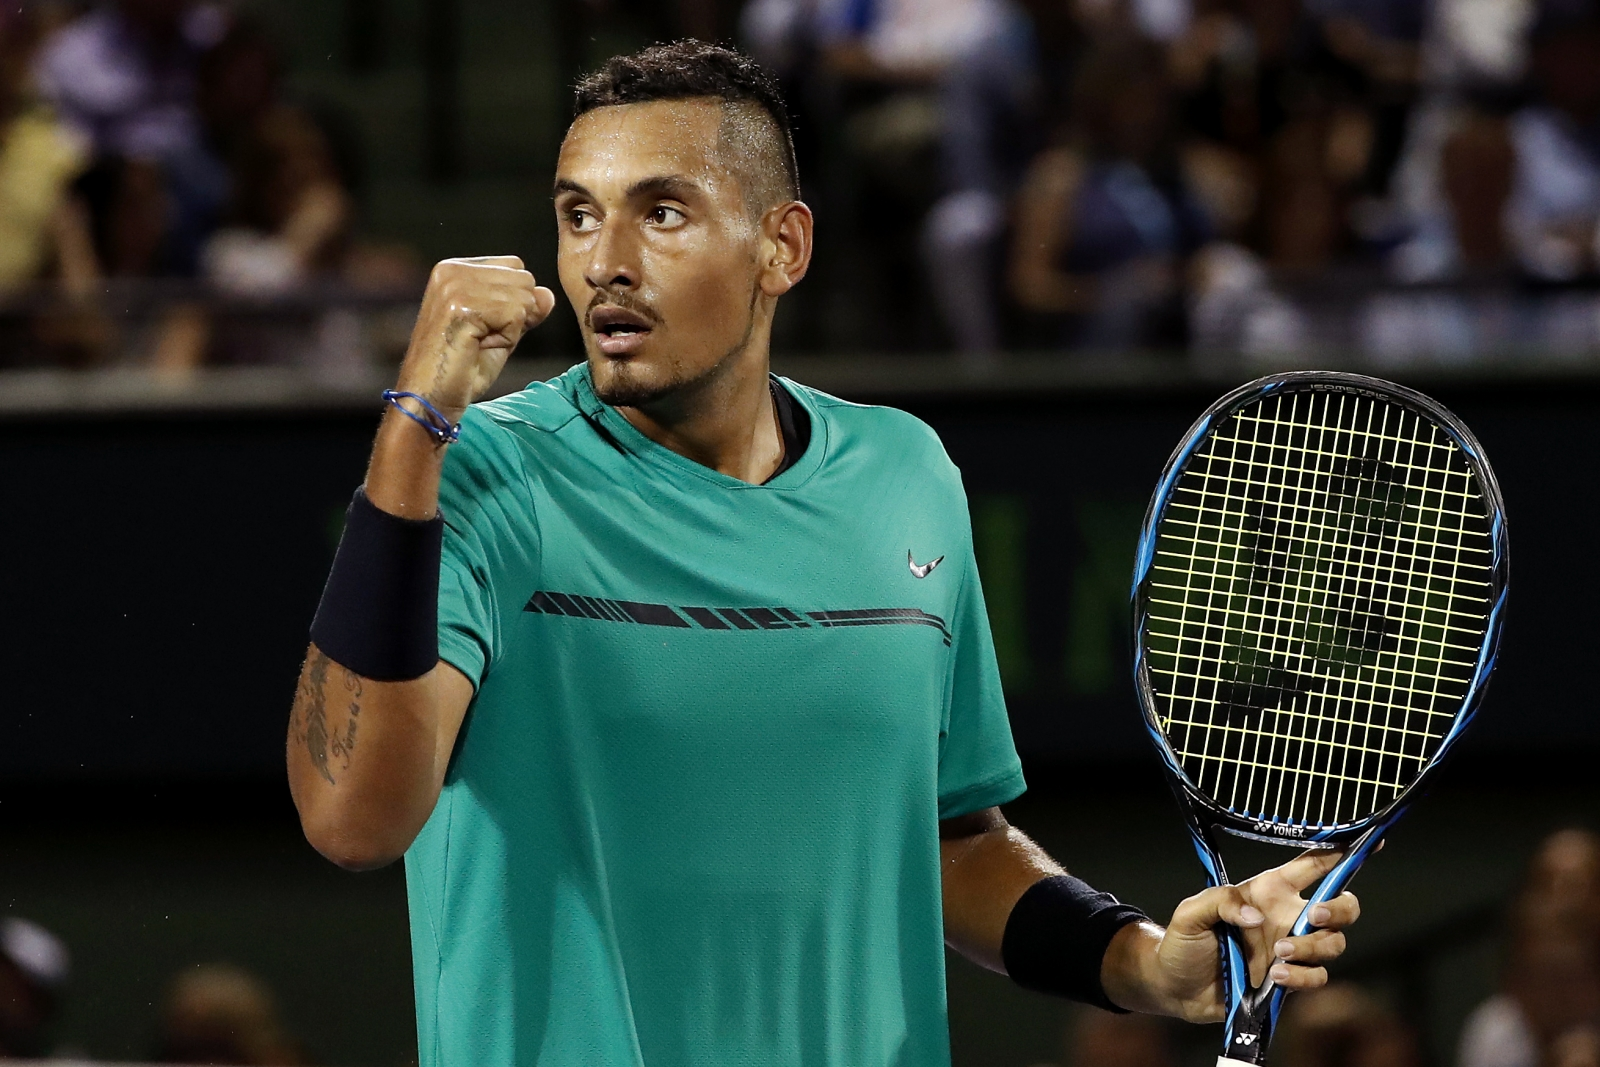 nick kyrgios pinpoints key strengths of roger federer